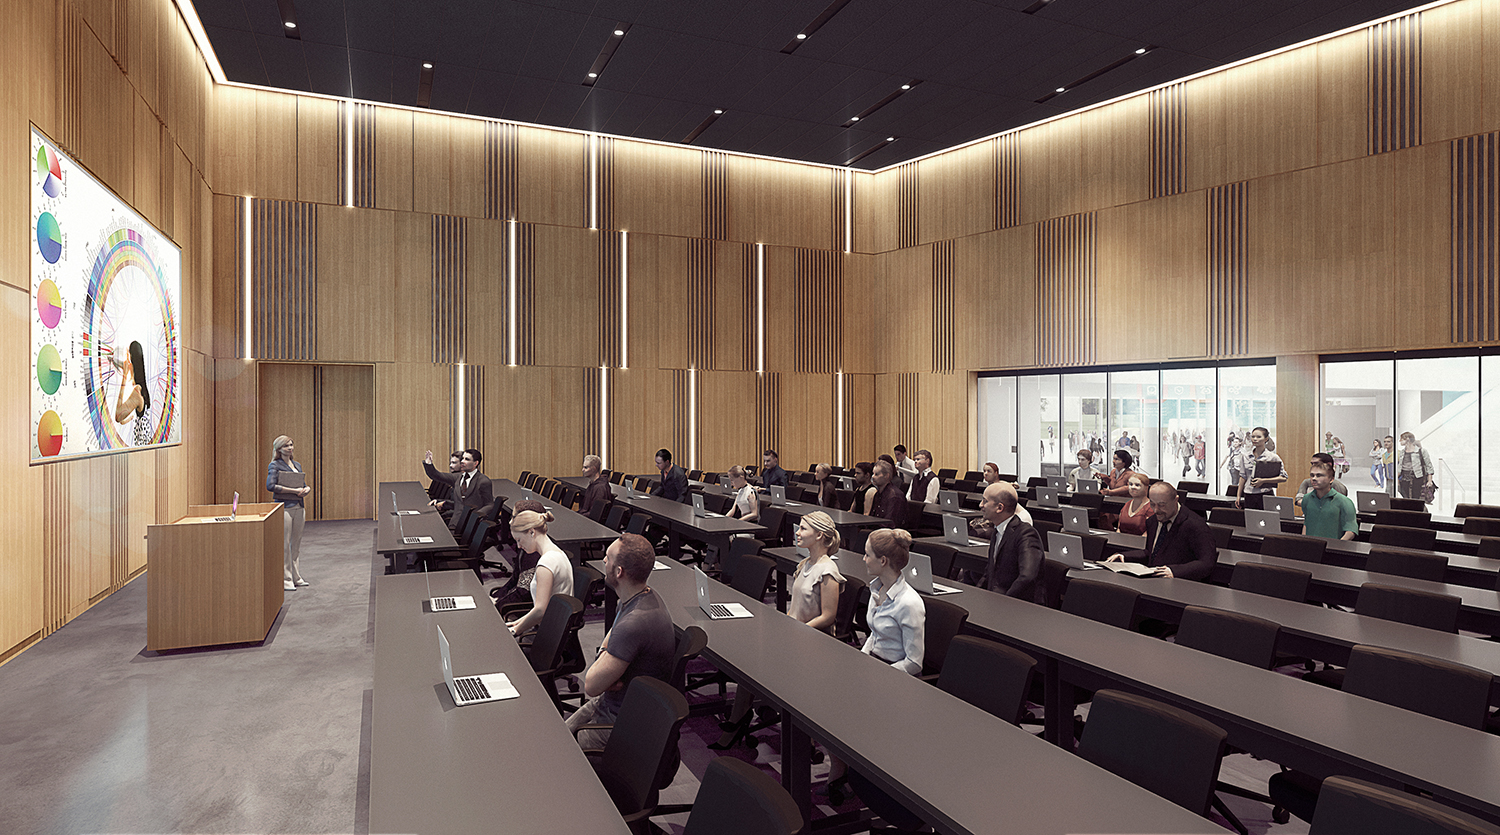 Lecture Hall Final_60res.jpg